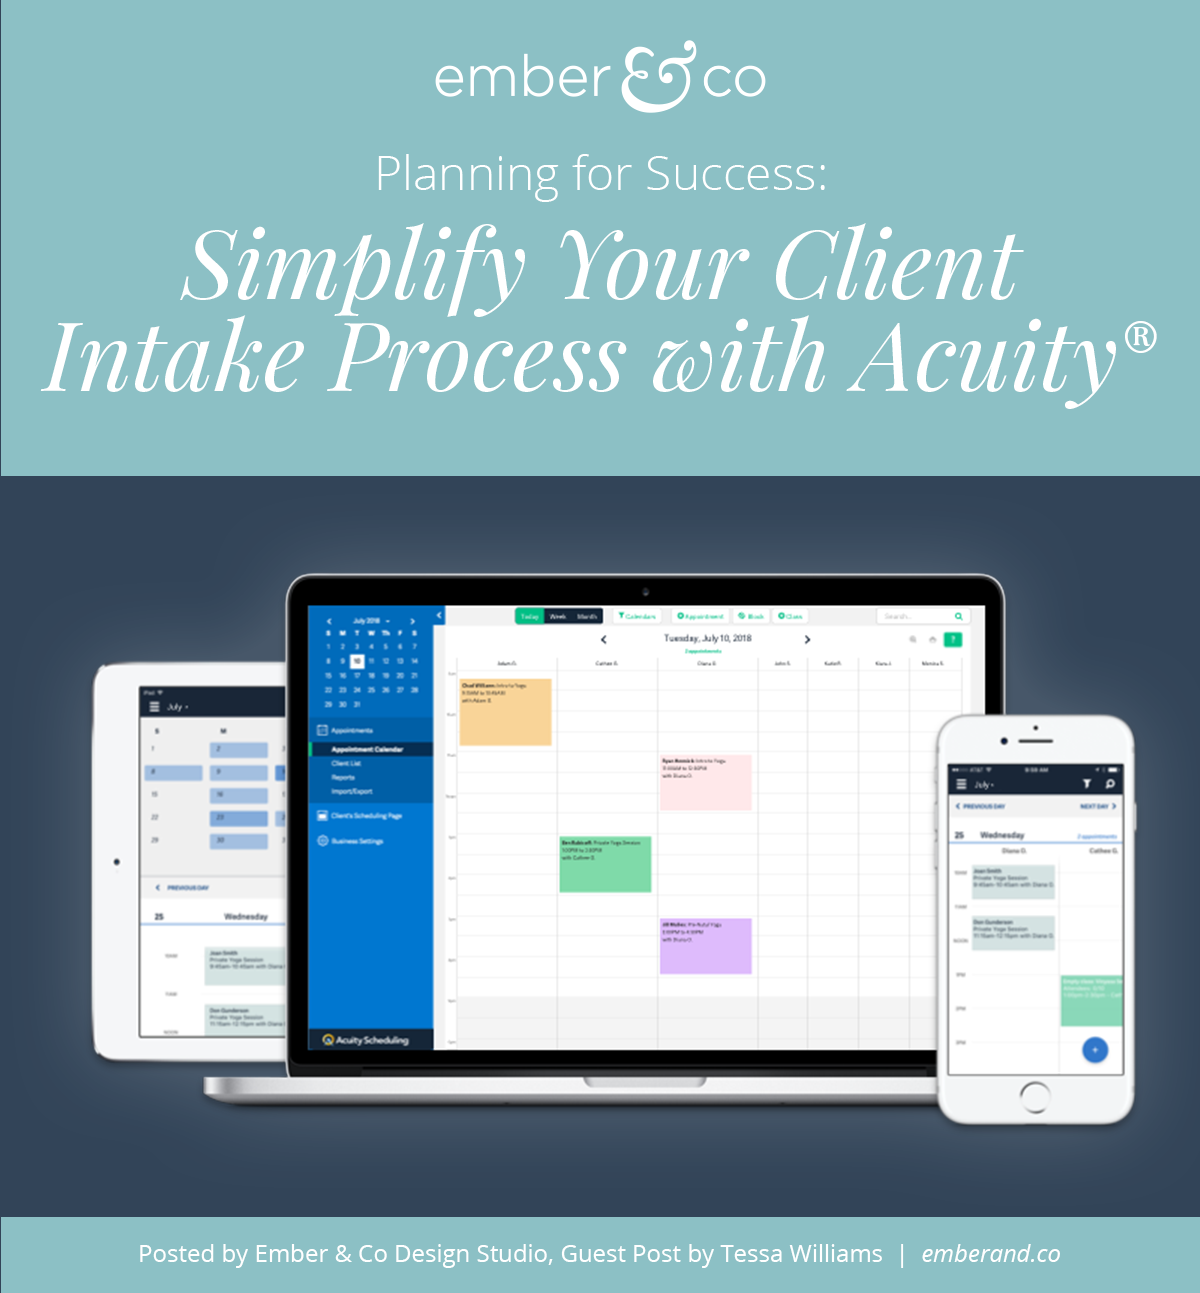 Planning for Success: Simplify Your Client Intake Process with Acuity